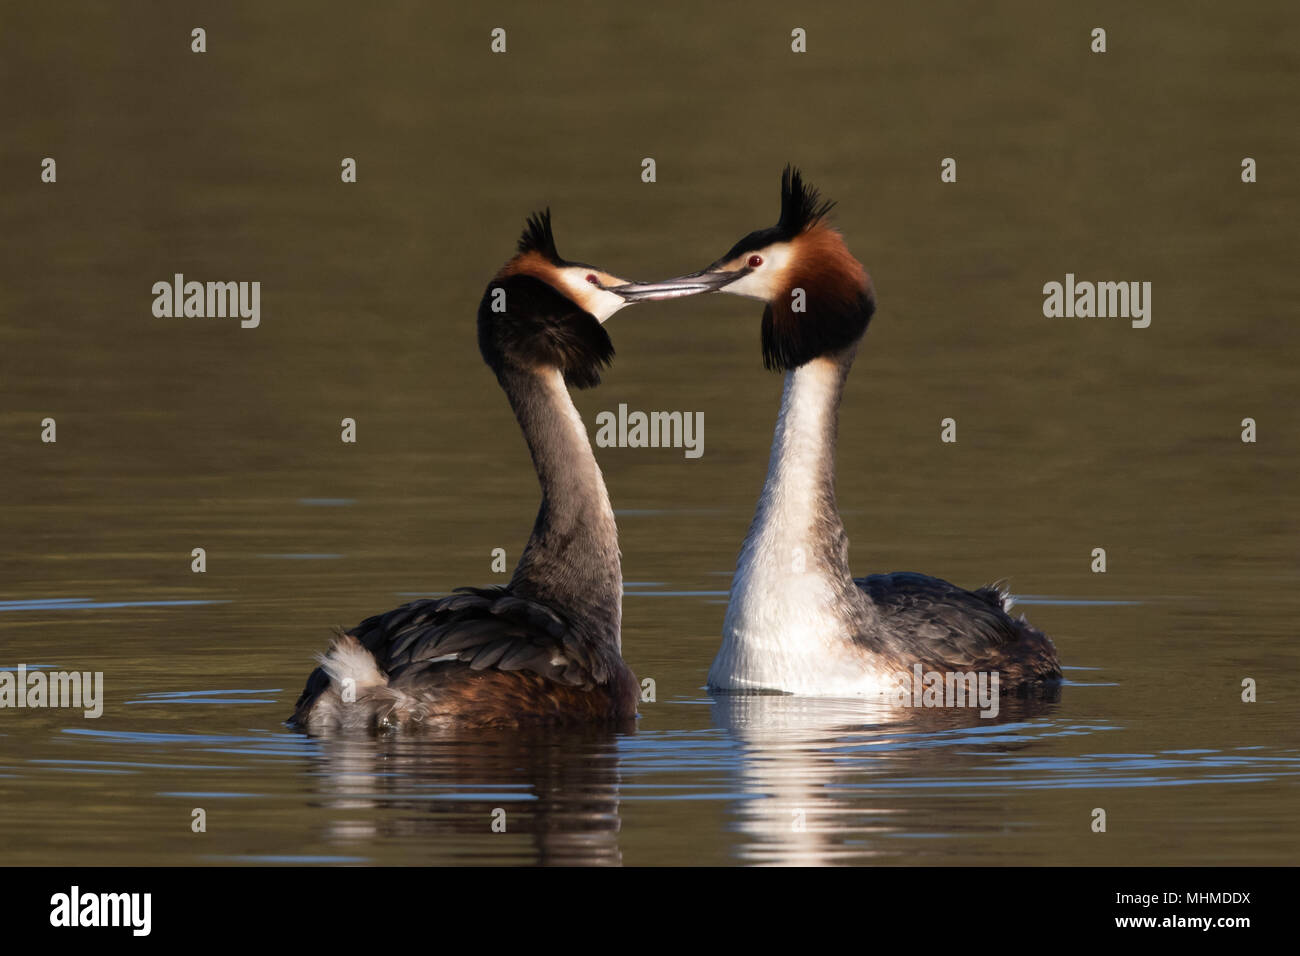 pair of Great Crested Grebes (Podiceps cristatus) fencing with their bills at the start of their courtship display - Stock Image